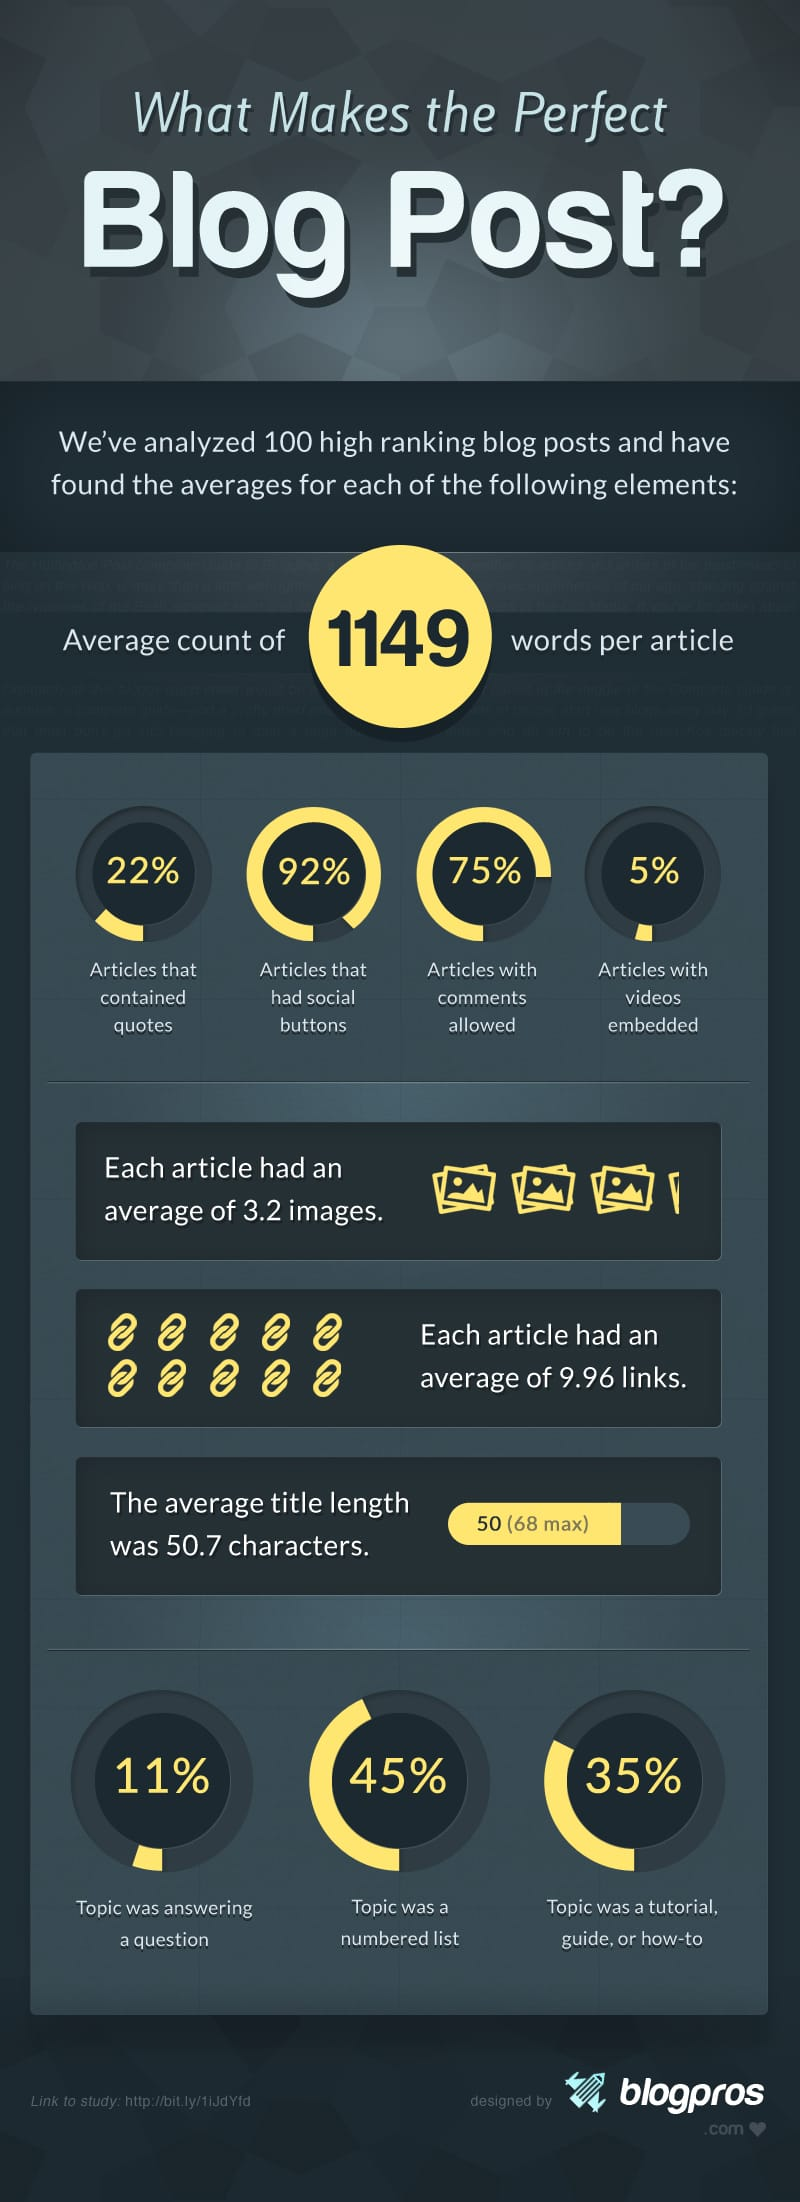 What Makes the Perfect Blog Post?